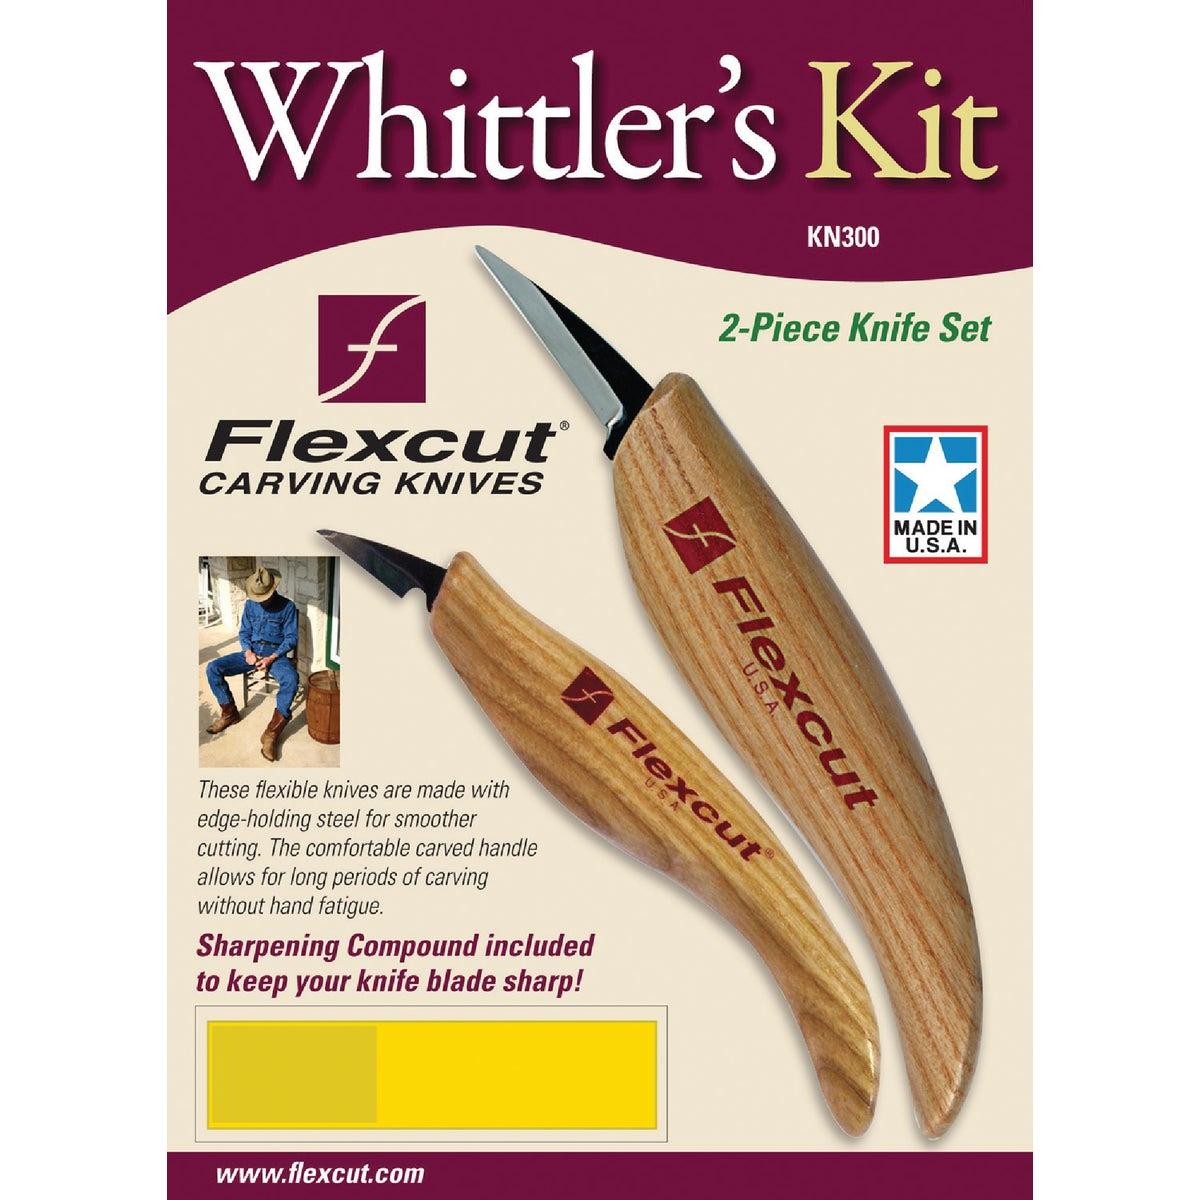 WHITTLER'S KIT - KN300 by Flexcut Tool Co